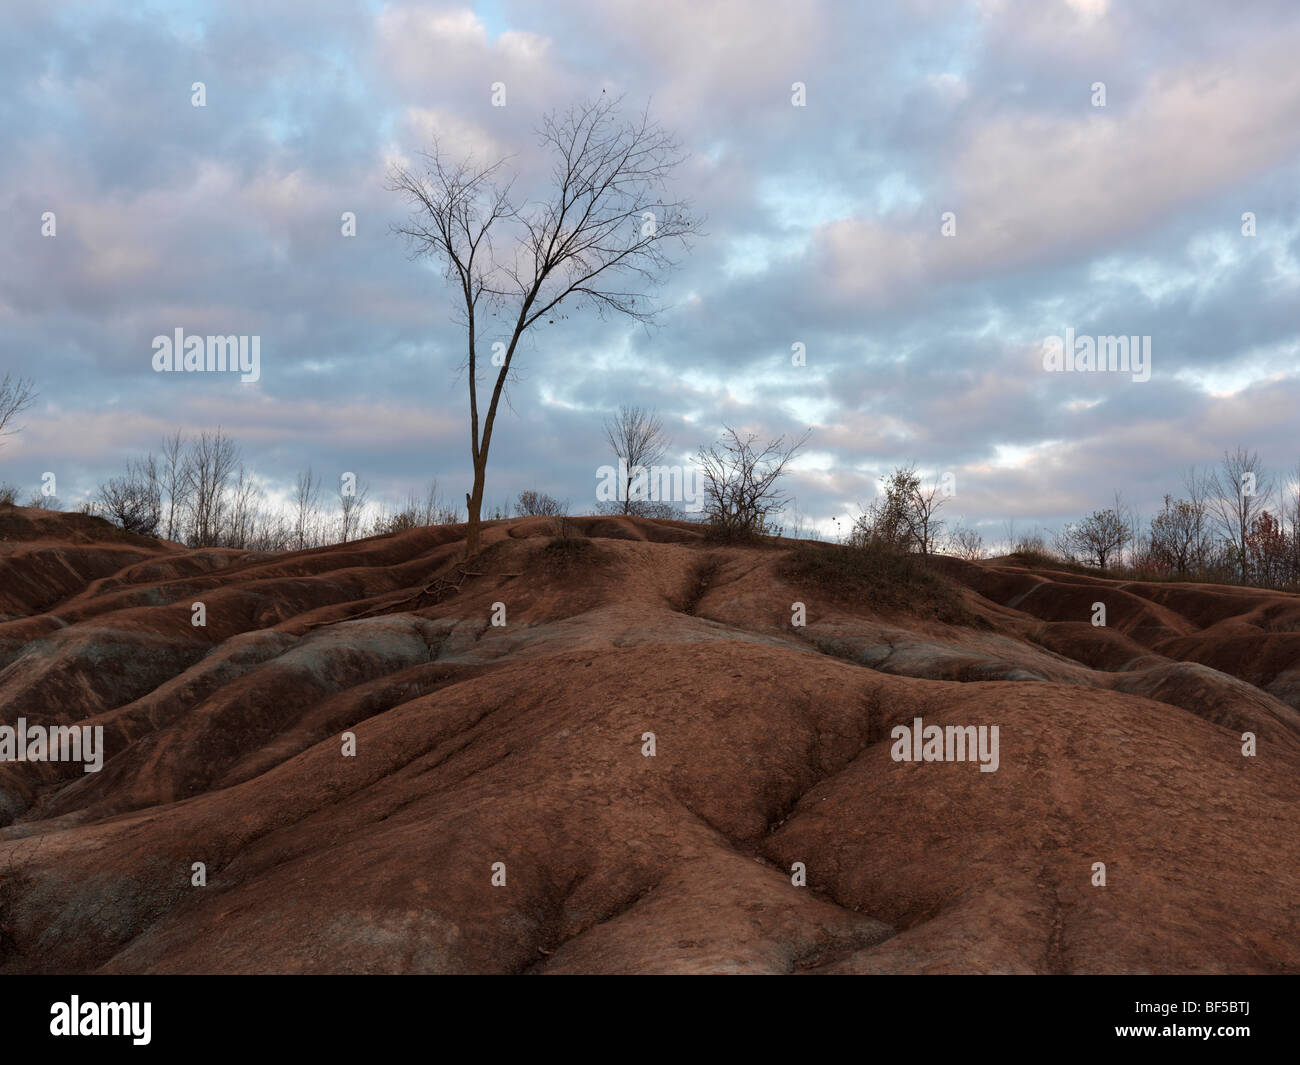 Leafless trees at Cheltenham Badlands in fall. Ontario, Canada. - Stock Image